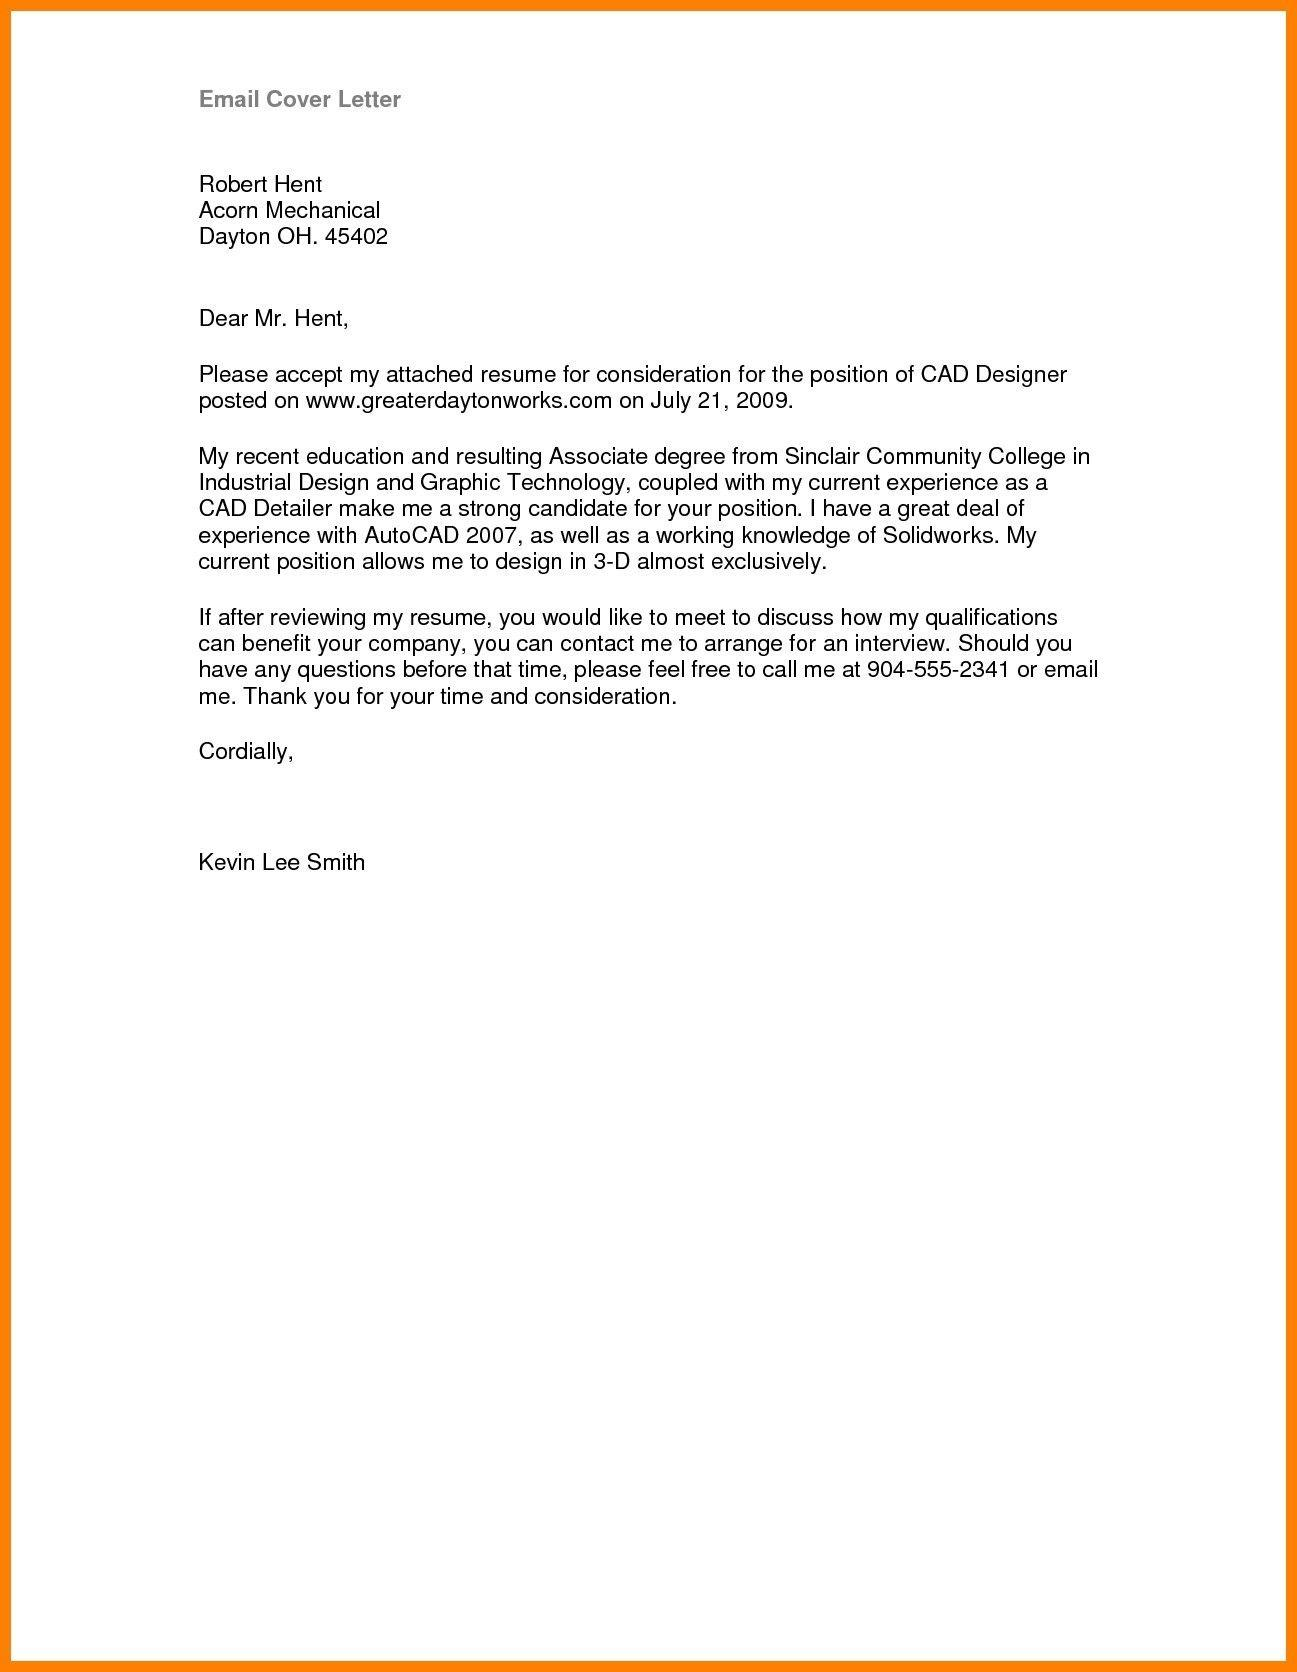 35 Top Email Cover Letter Sample for Pictures